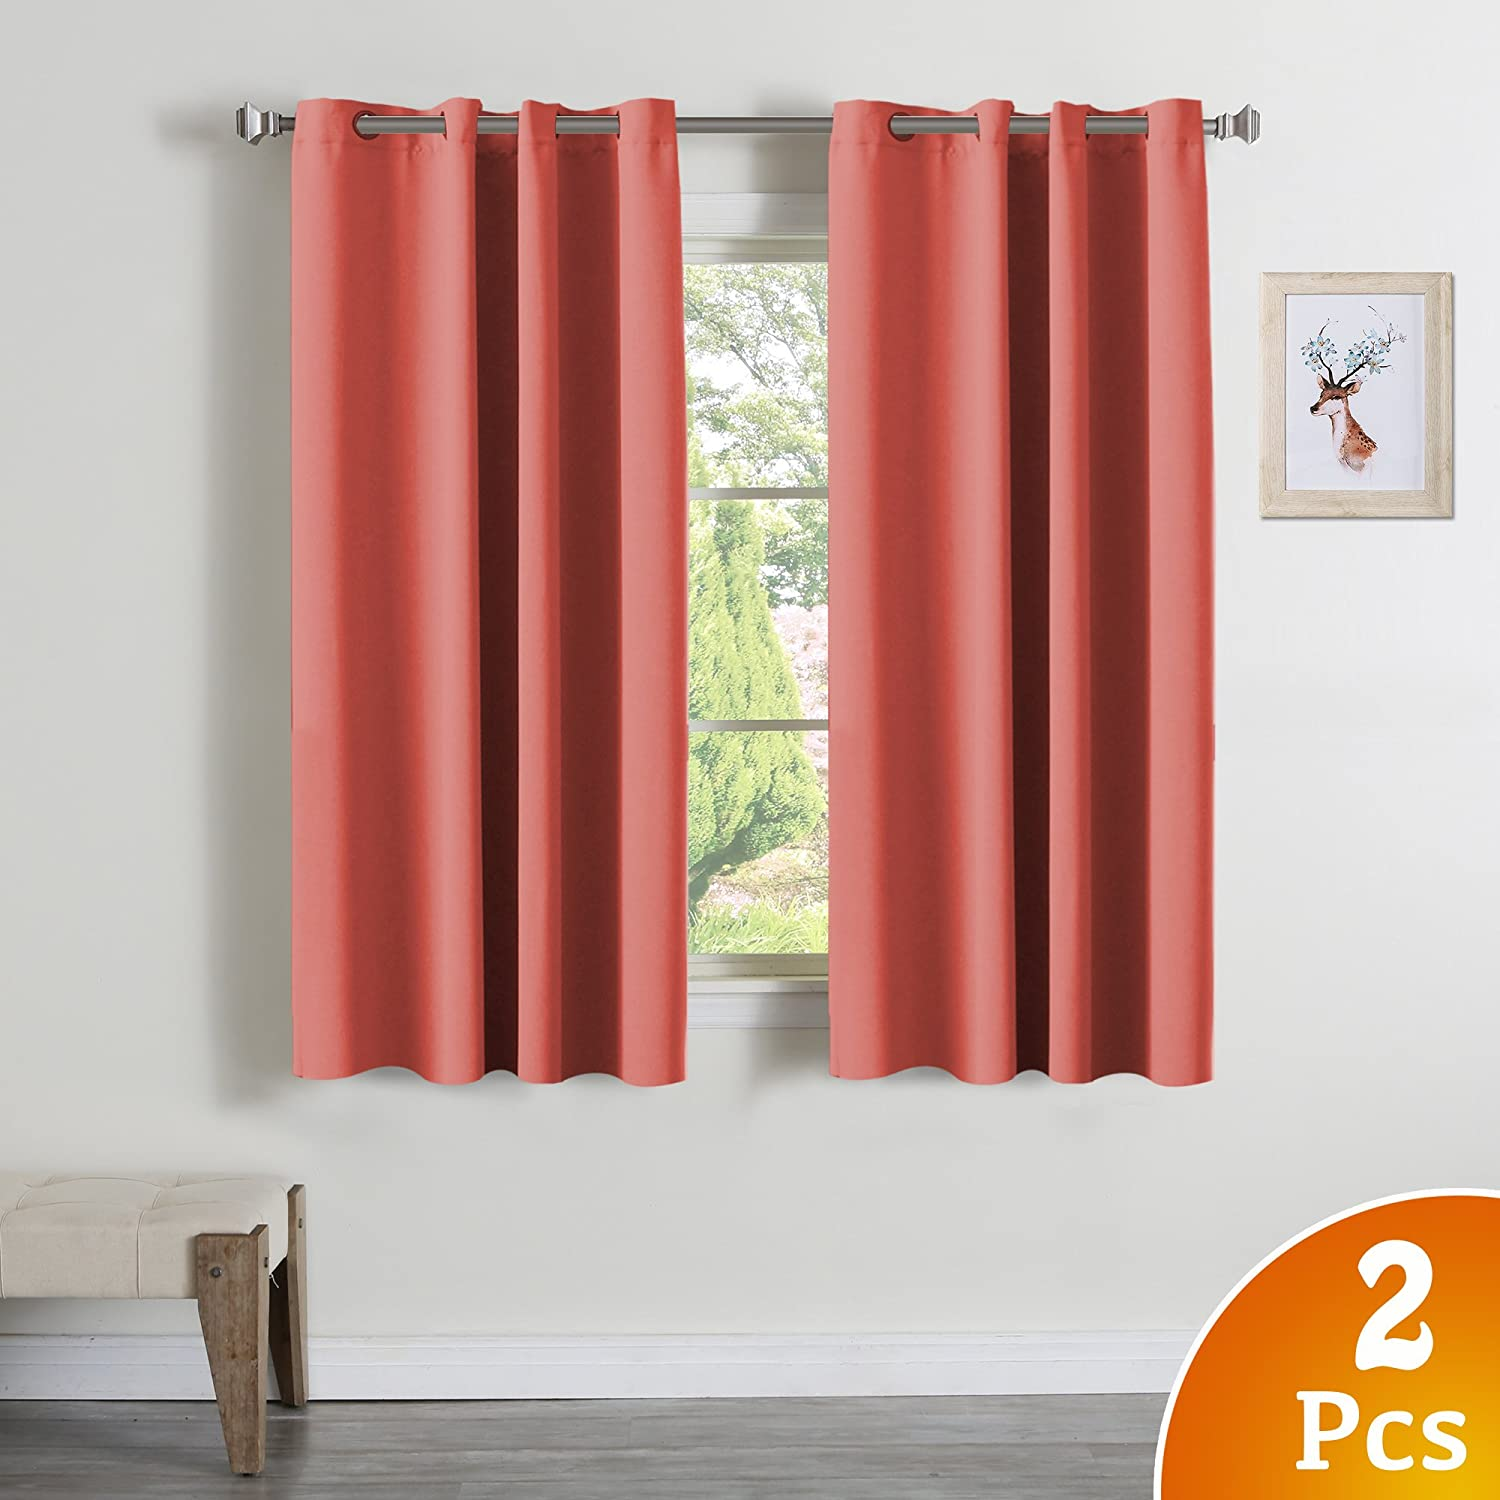 campbell melbourne custom heeps drapes factory direct made curtains